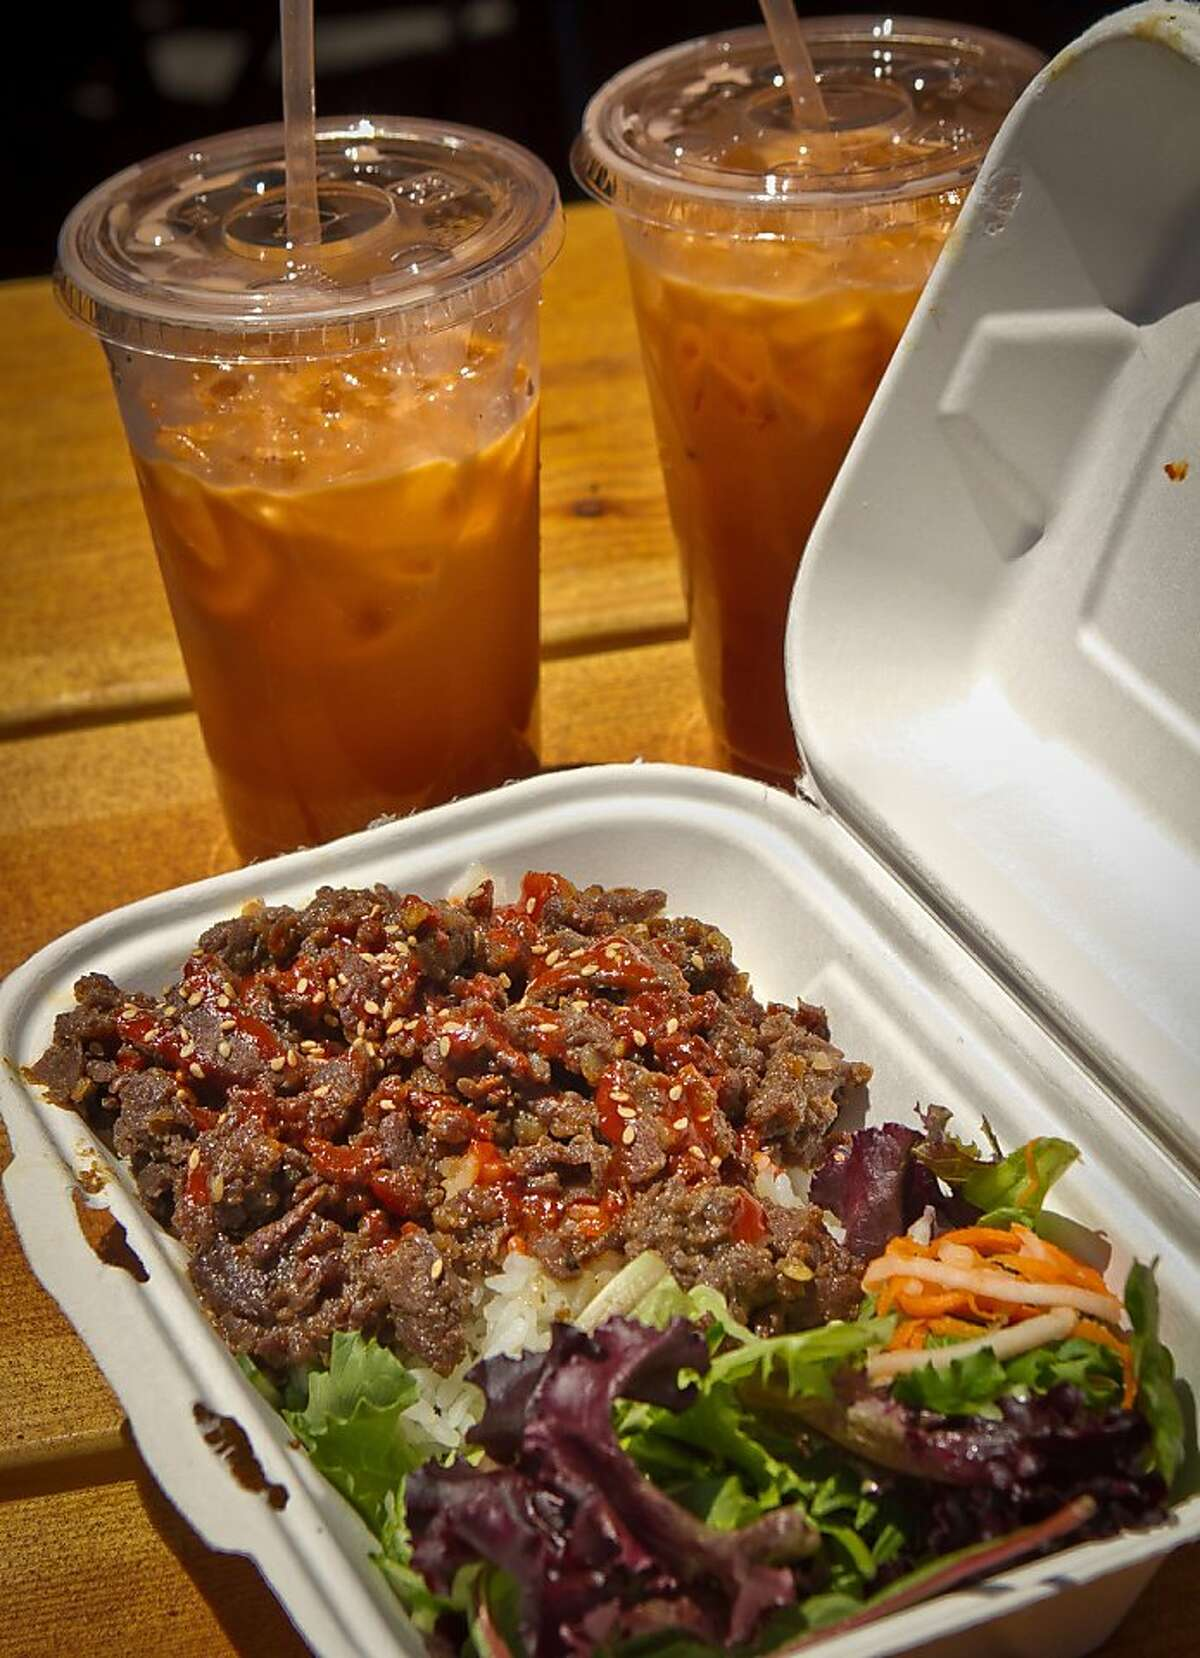 The Beef Bulgogi from the Hiyaa truck at the Streat Food Park in San Francisco, Calif., is seen on Thursday, June 28th, 2012.